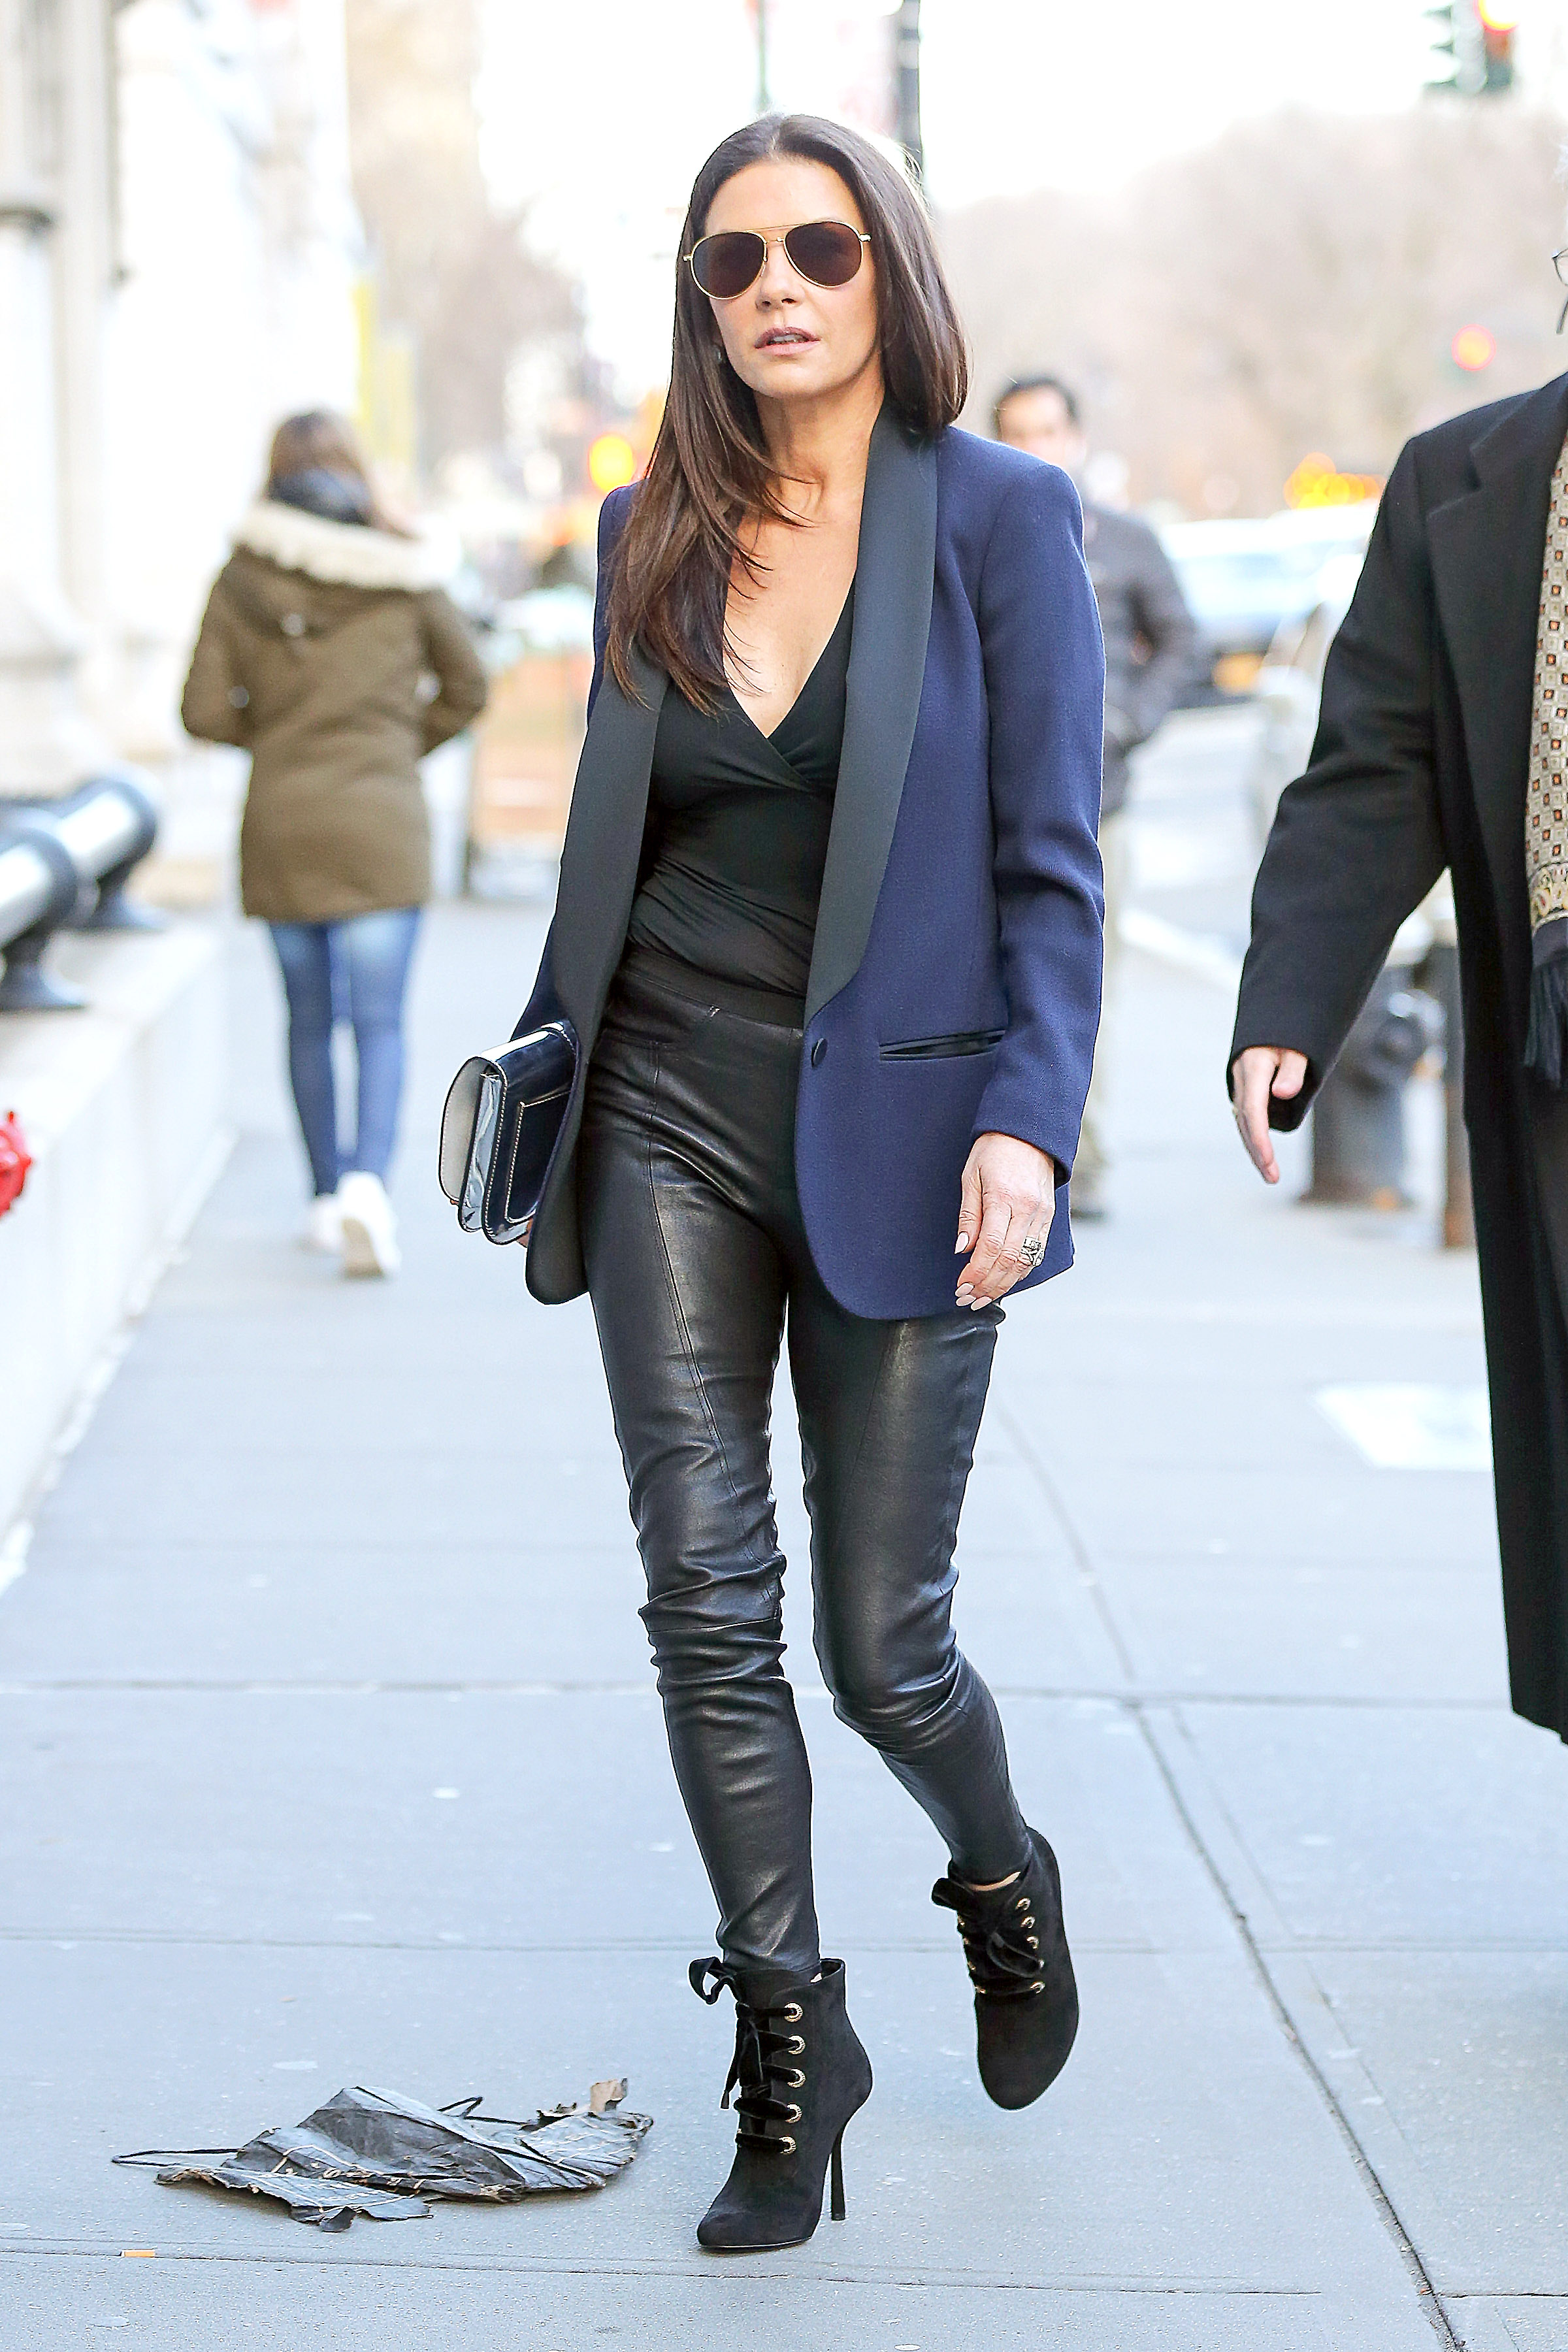 Catherine Zeta Jones Parades Her Lean Legs In Leather Pants As She Promotes 'Feud' In NY